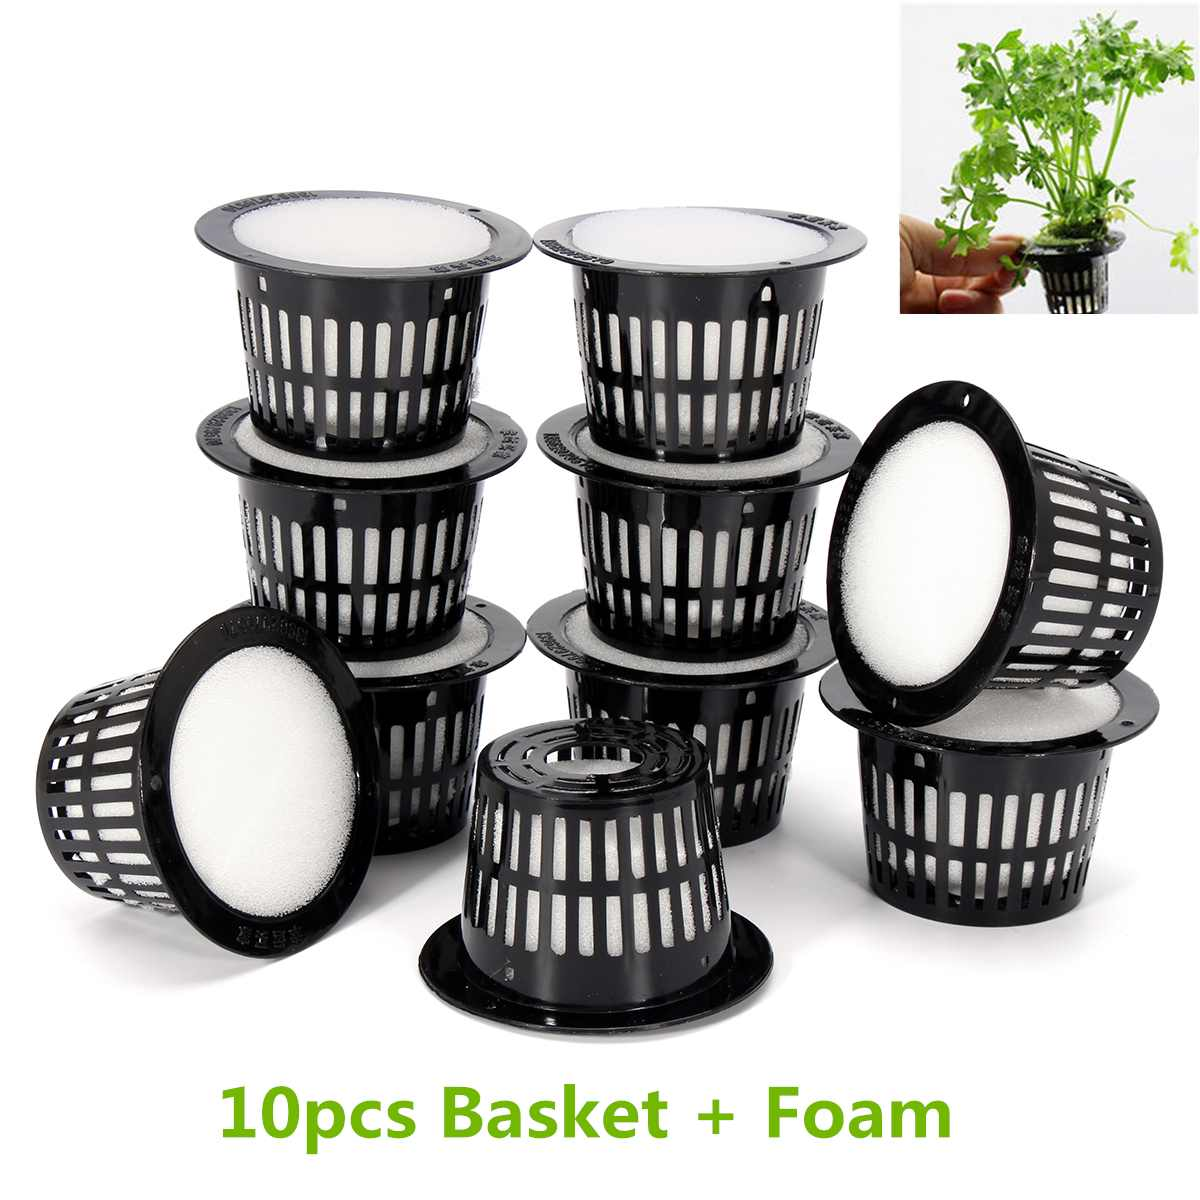 10Pcs Mesh Pot Net Cup Basket Hydroponic System Garden Plant Grow Vegetable Cloning Foam Seed Germinate Nursery Pots 2 Size